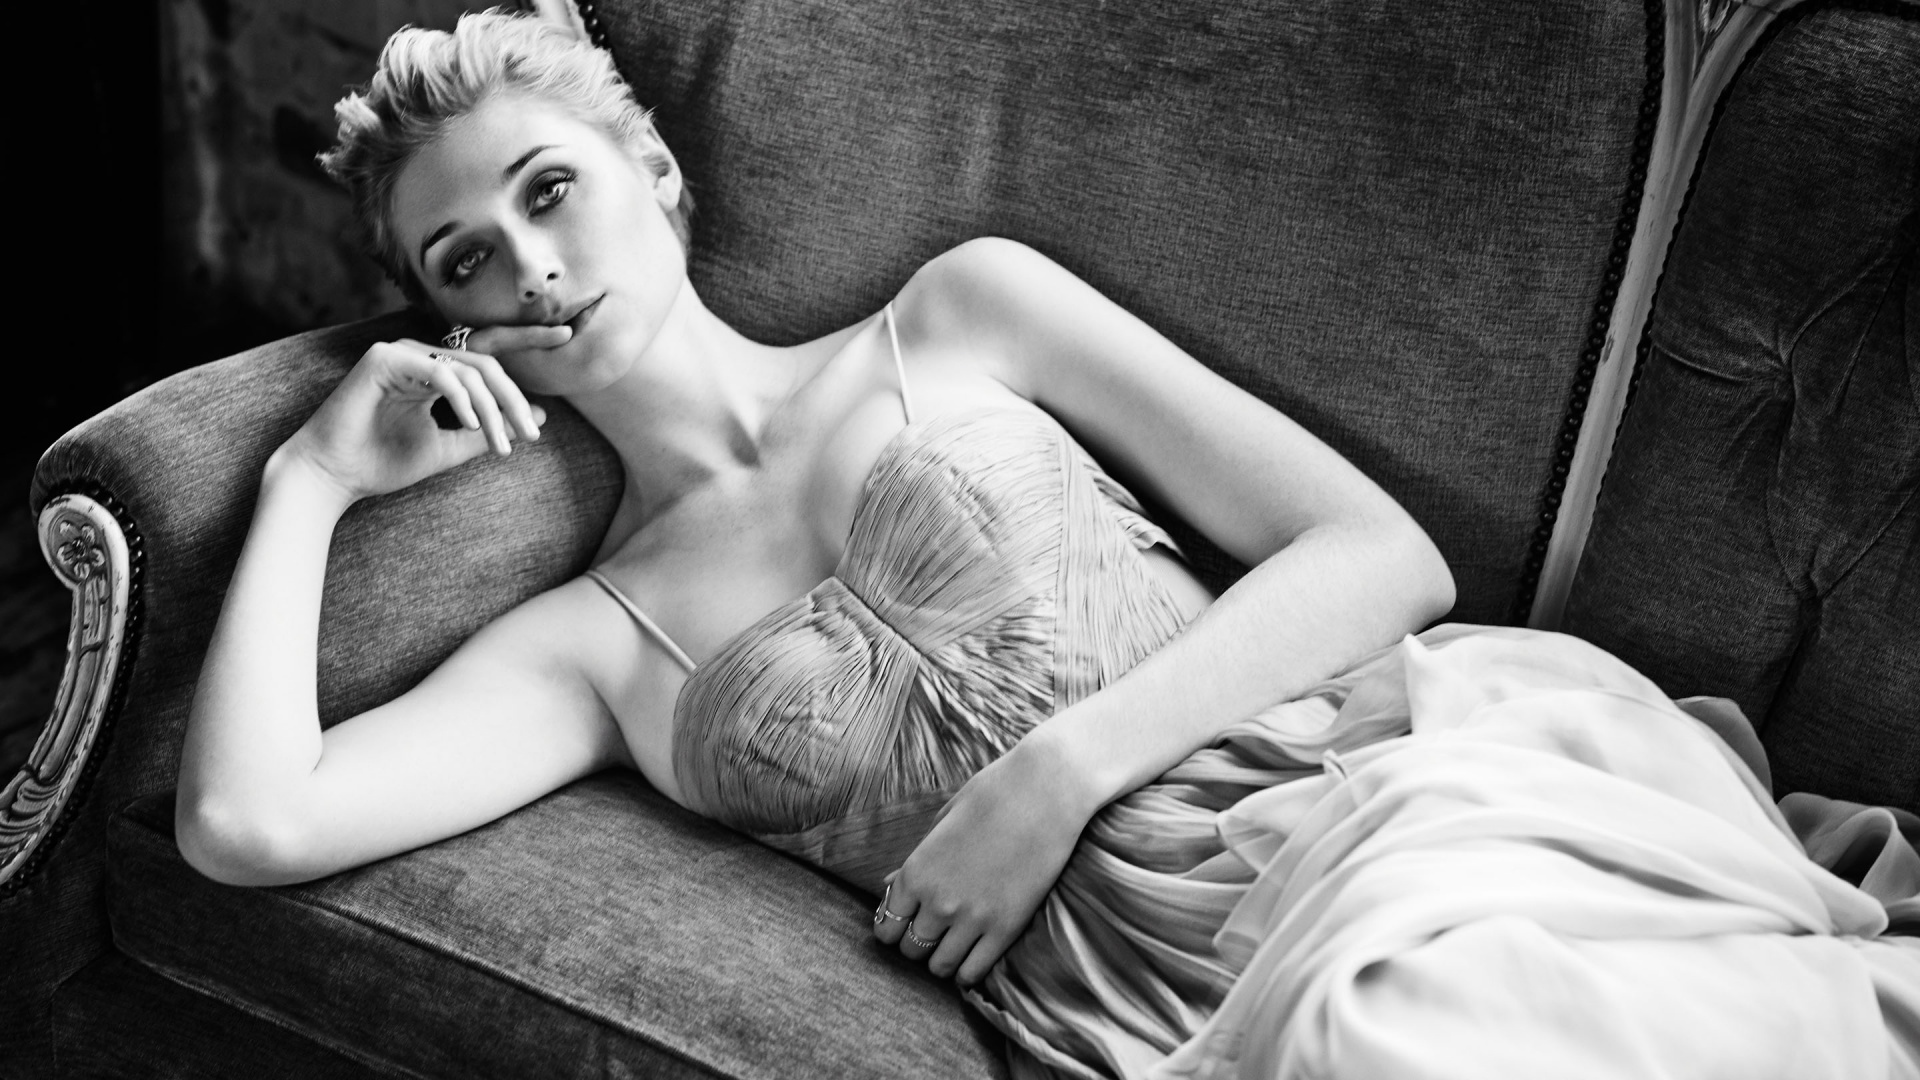 monochrome elizabeth debicki wallpaper 56820